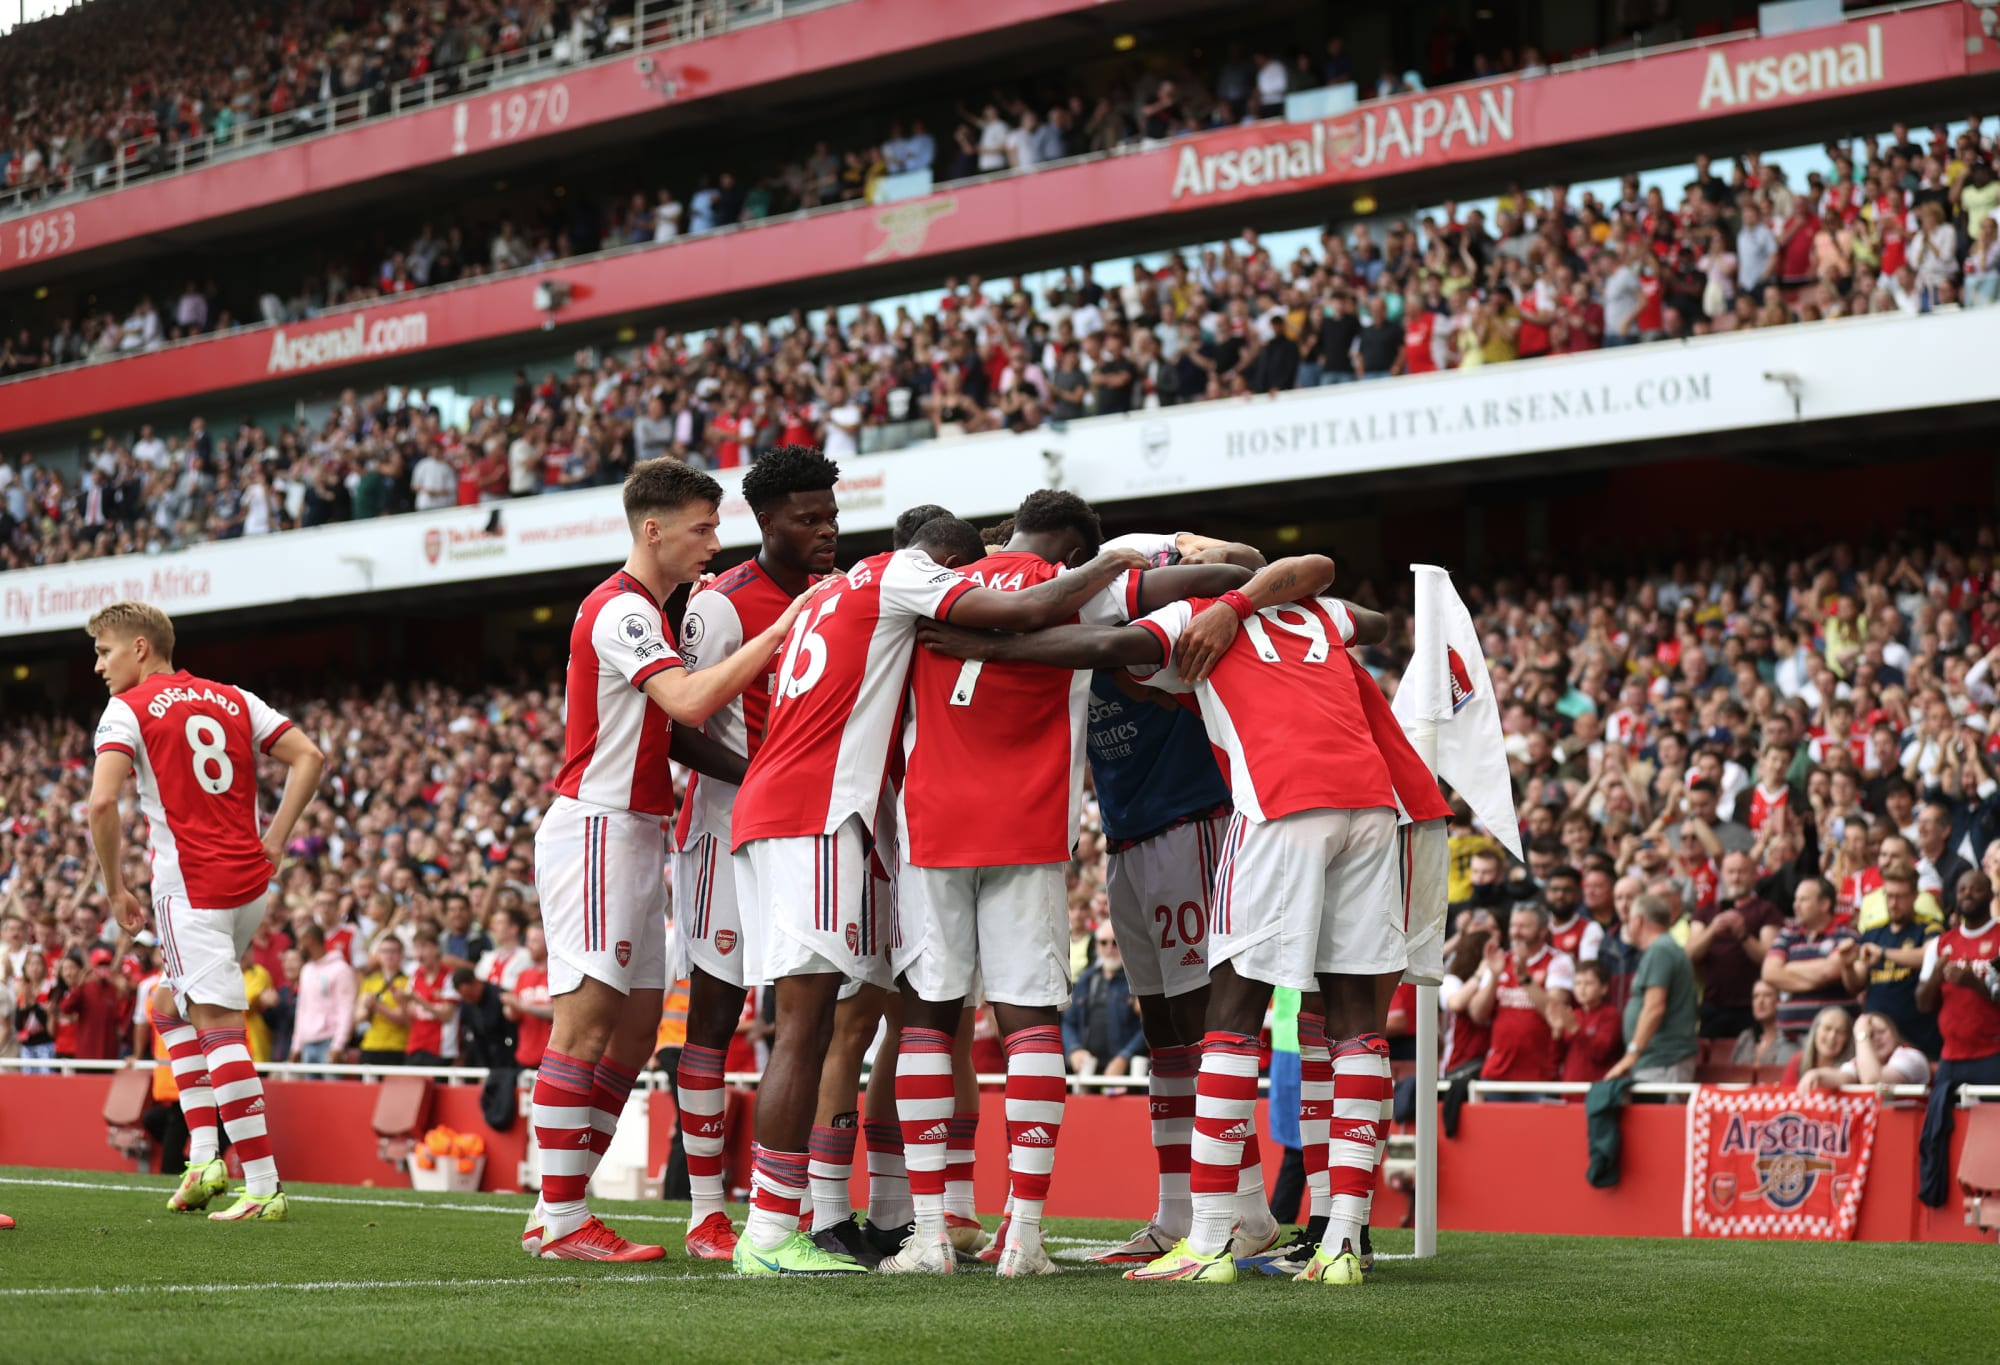 Arsenal predicted lineup vs Burnley: 3-4-3 for aerial threat?